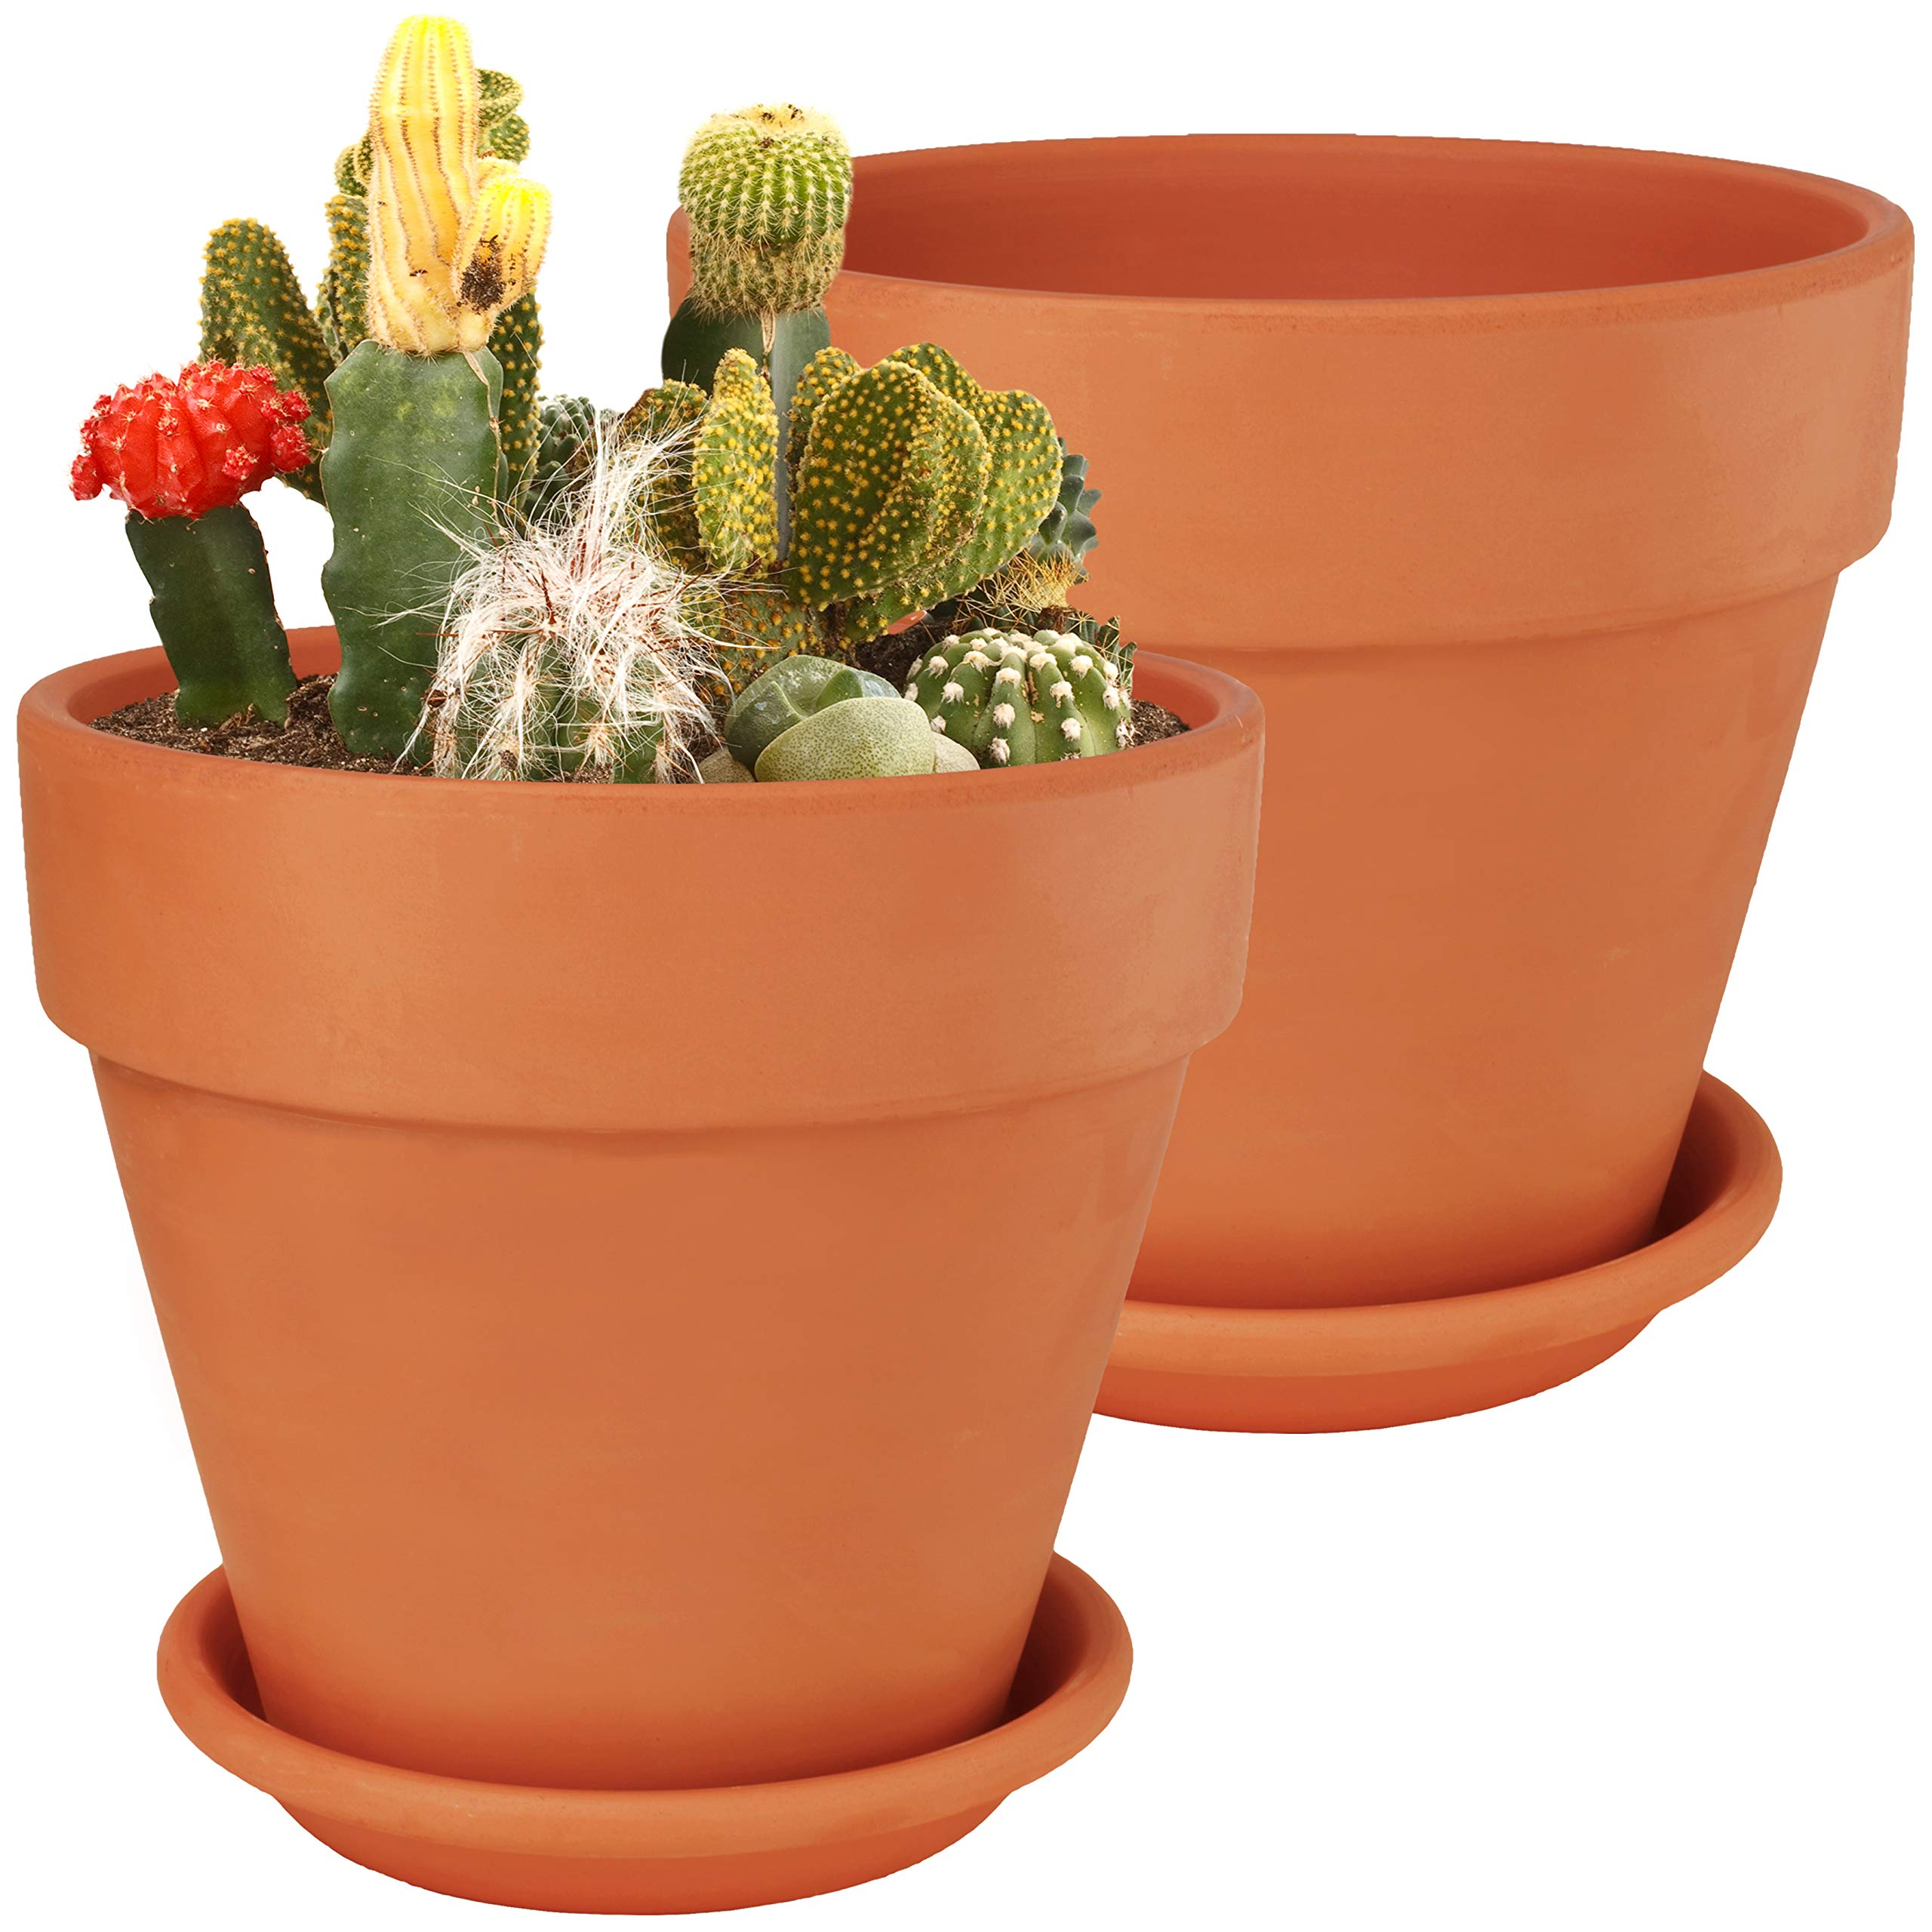 8 Inch Large Terra Cotta Pots with Saucer- 2-Pack Clay Flower Pots with Saucers, Flower Pot Planters for Indoor, Outdoor Plant, Succulent Display (8 inches) by BESTTOYHOME